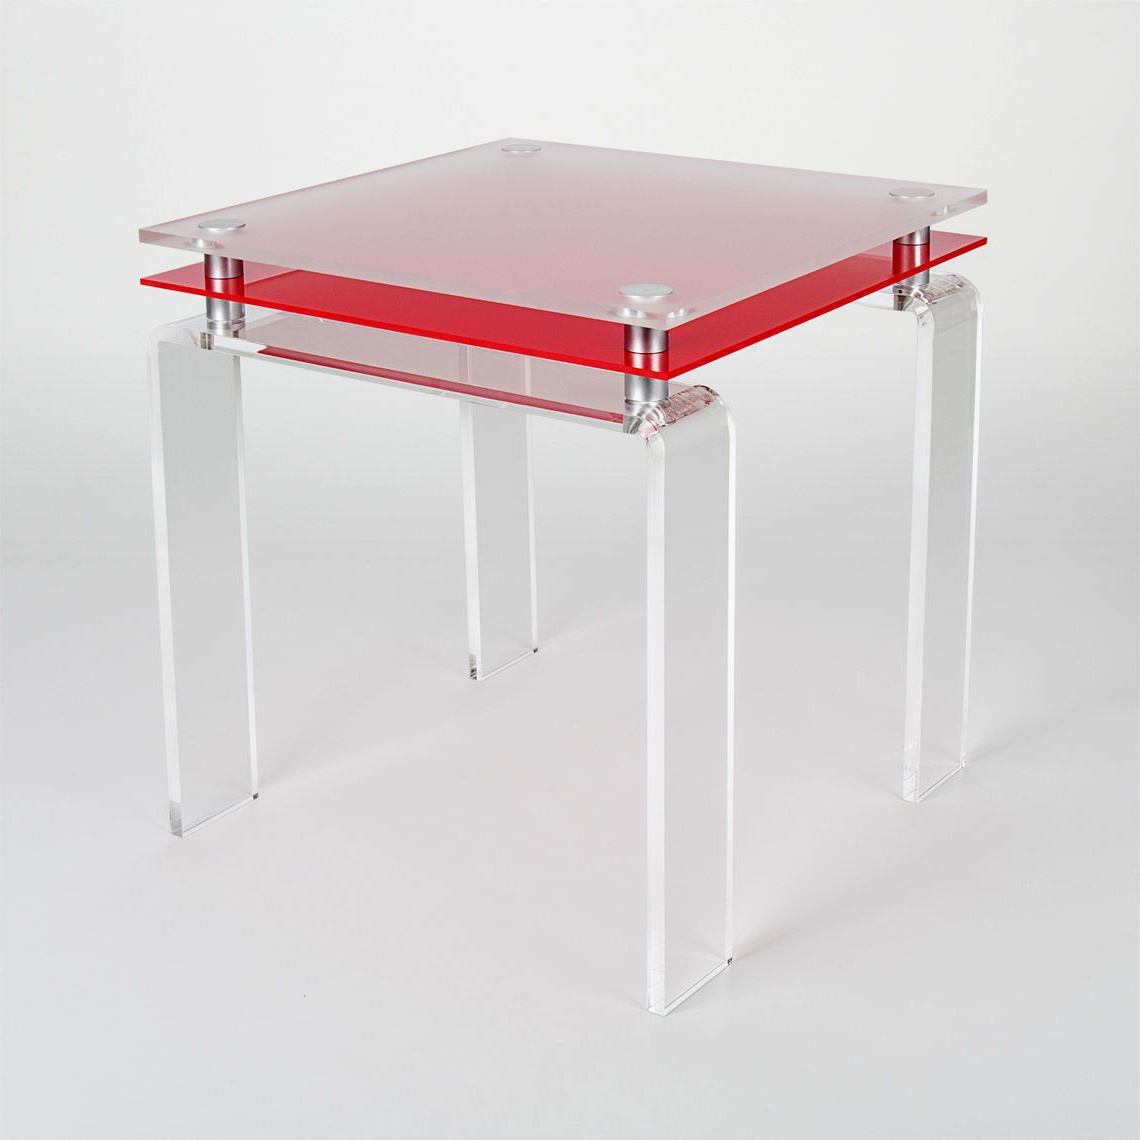 Modern Acrylic Coffee Tables Pertaining To Well Known Modern Acrylic Coffee Table (View 18 of 20)